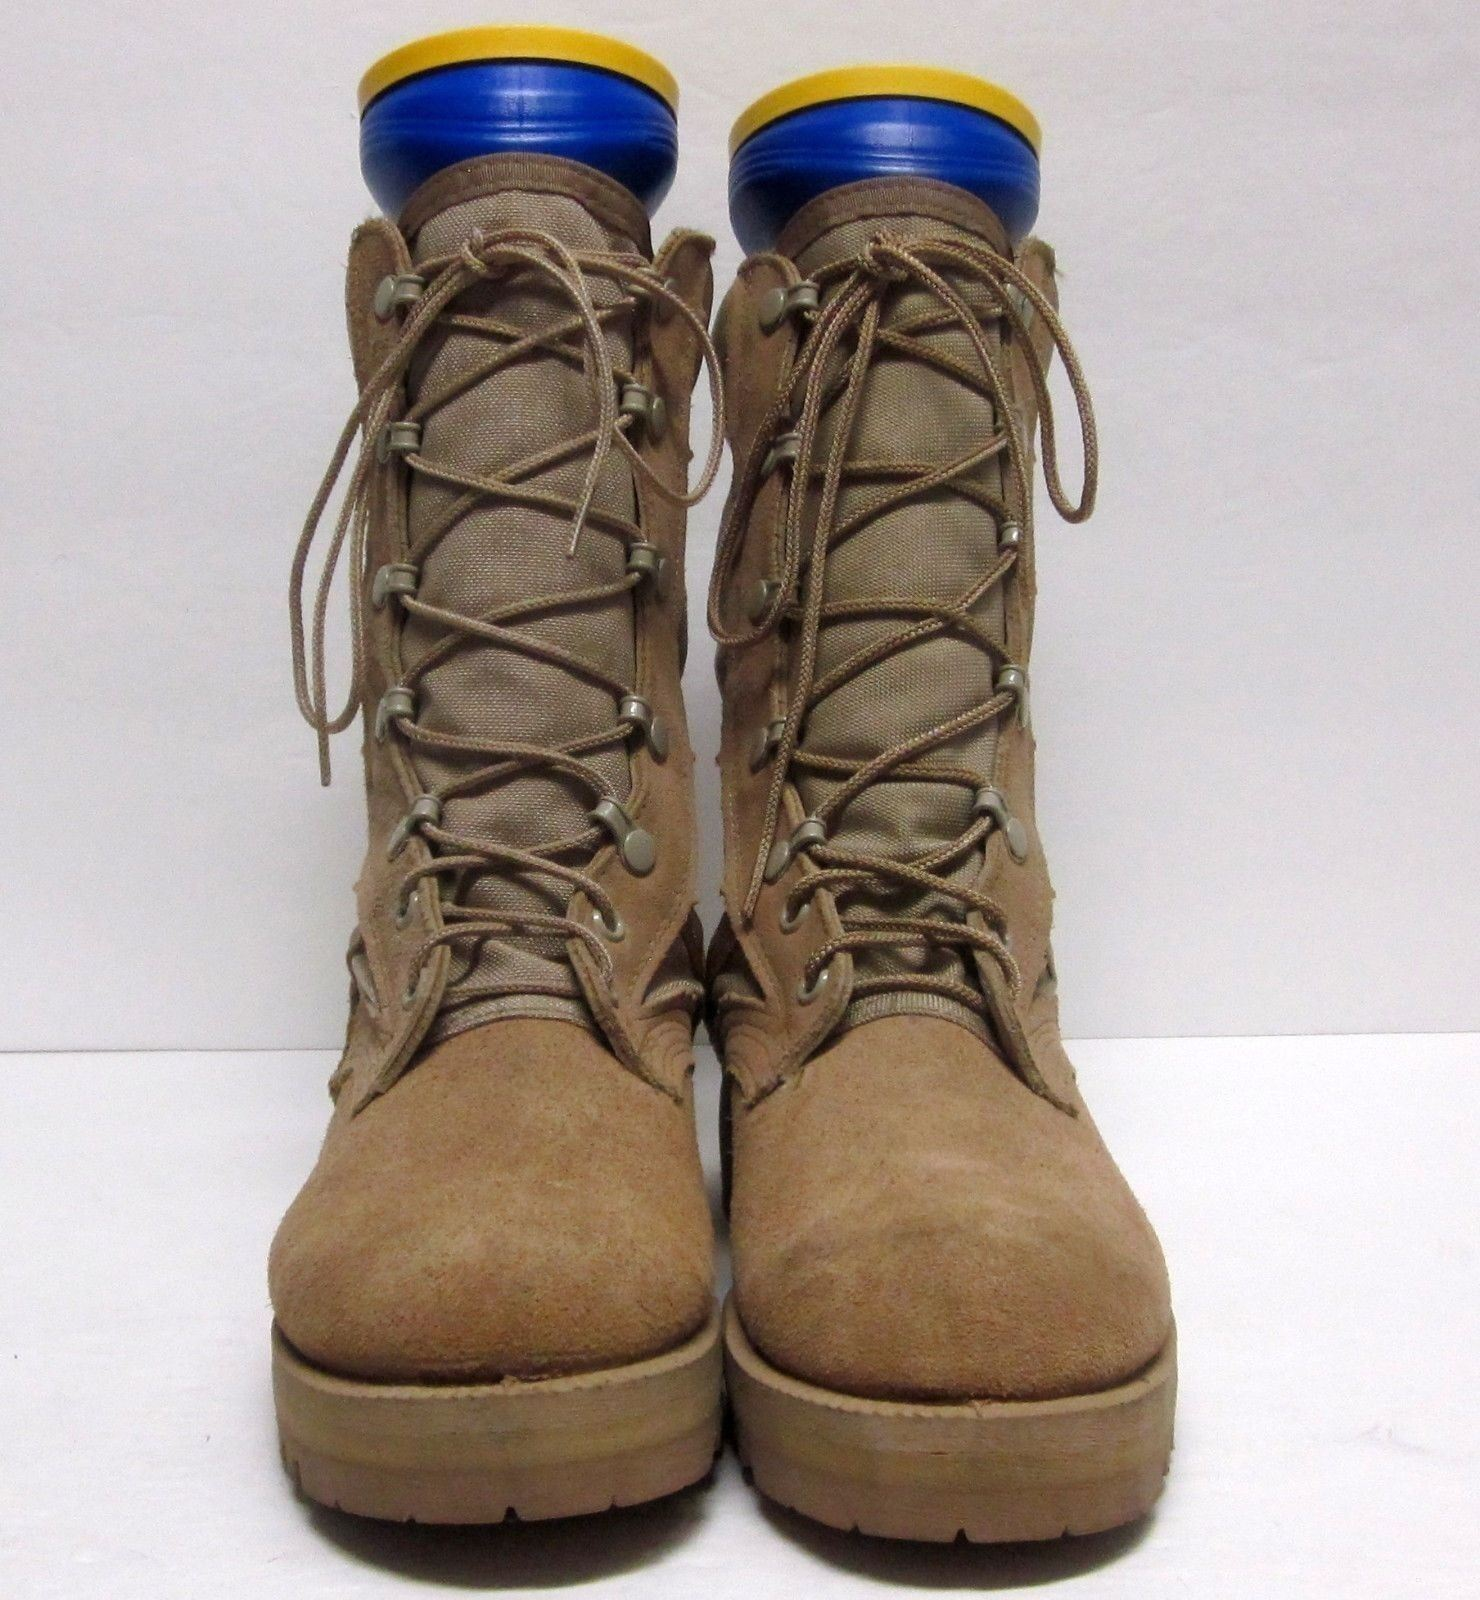 NWOB WELLCO (Sz 7) R 239-86 HOT WEATHER Military Boots Vibram Soles SUEDE